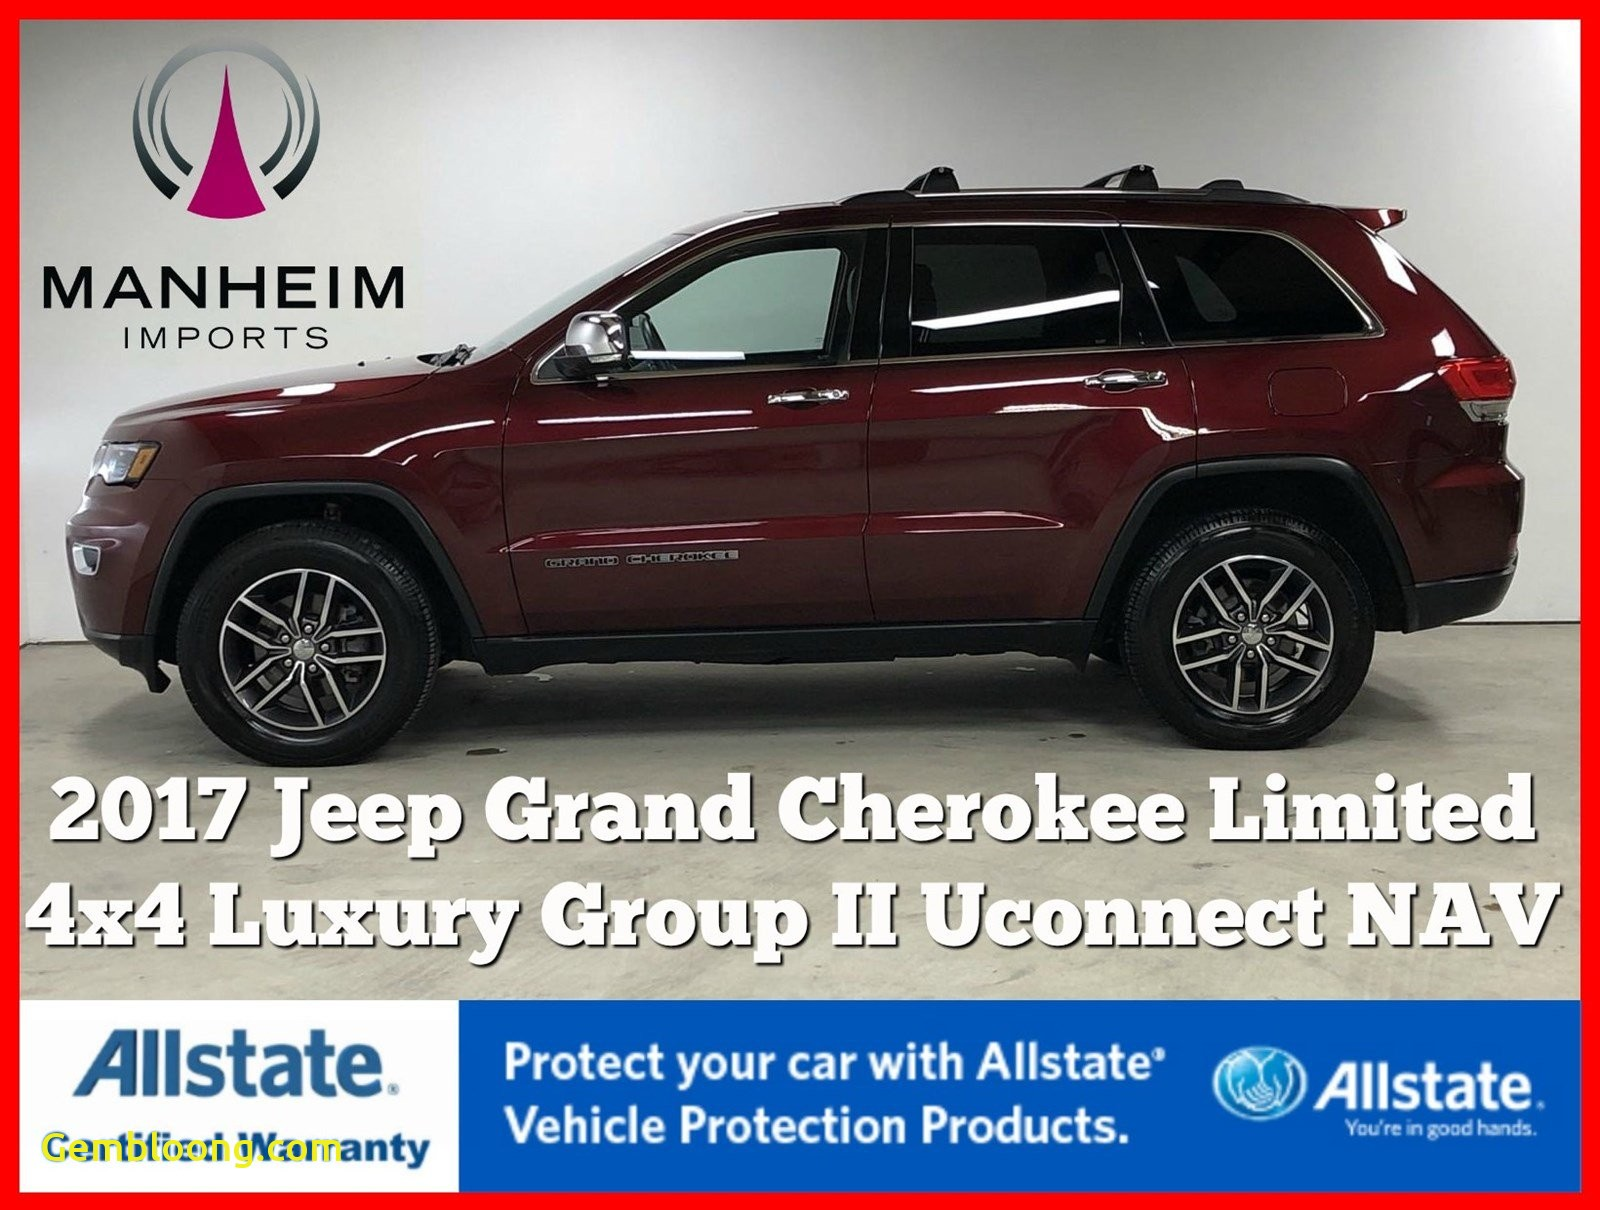 2017 Jeep Grand Cherokee Limited Unique 2017 Jeep Grand Cherokee Limited 4wd